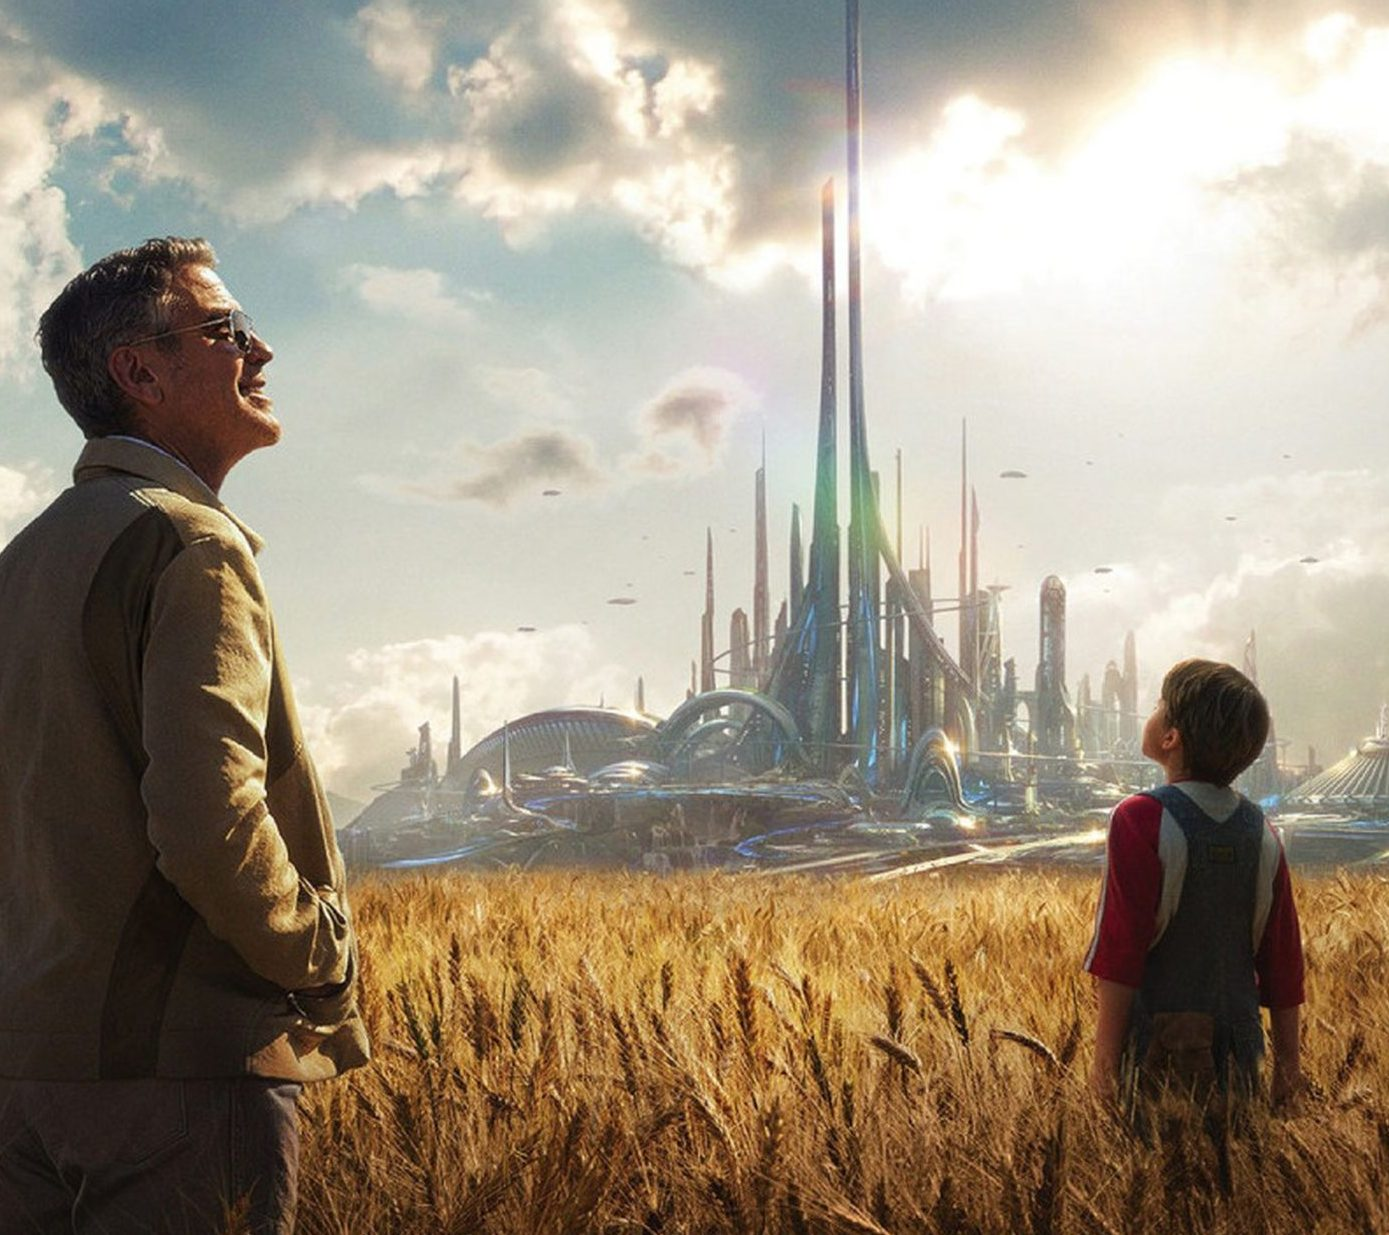 tomorrowland movie.0.1462605274 e1624544230768 Great Concepts That Somehow Made For Terrible Movies